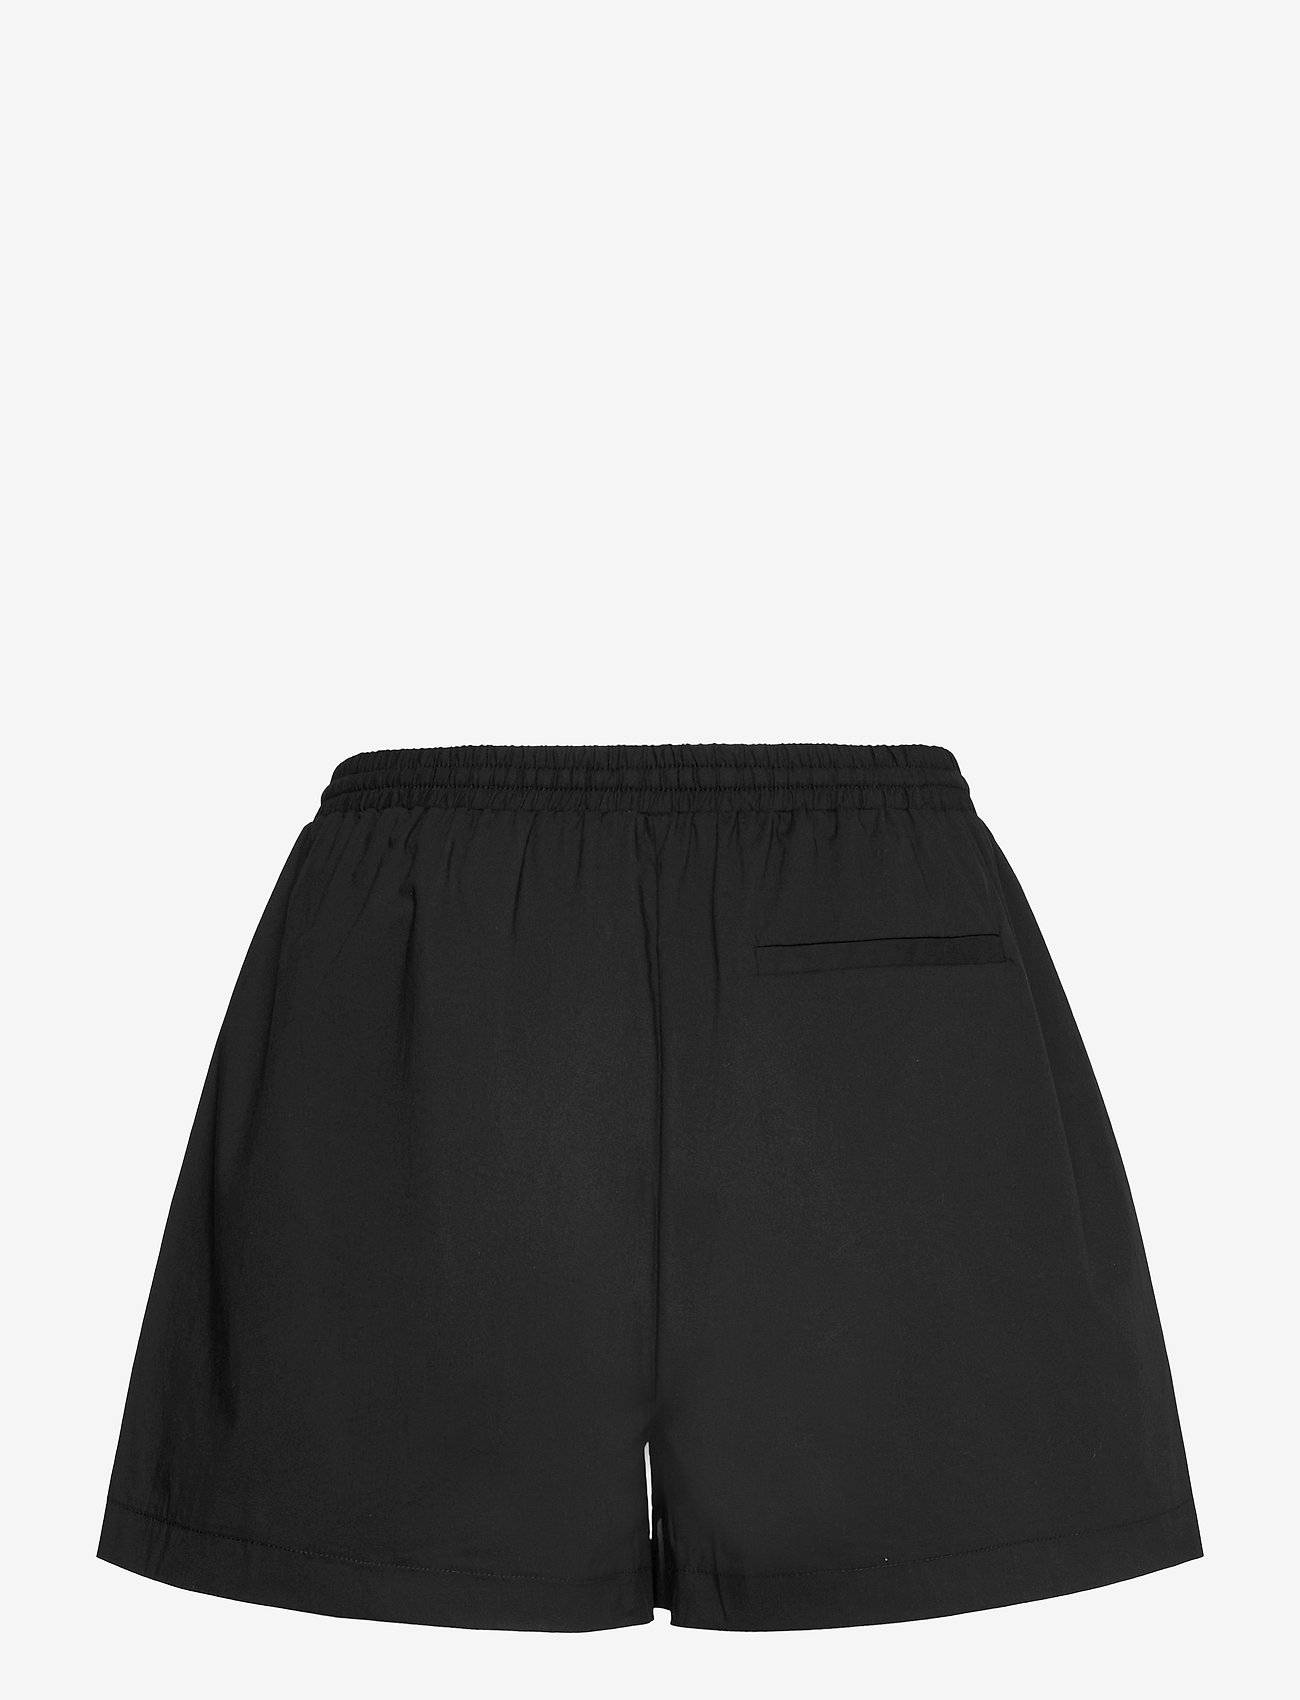 Fall Winter Spring Summer - Endless Summer - casual shorts - anthracite black - 1